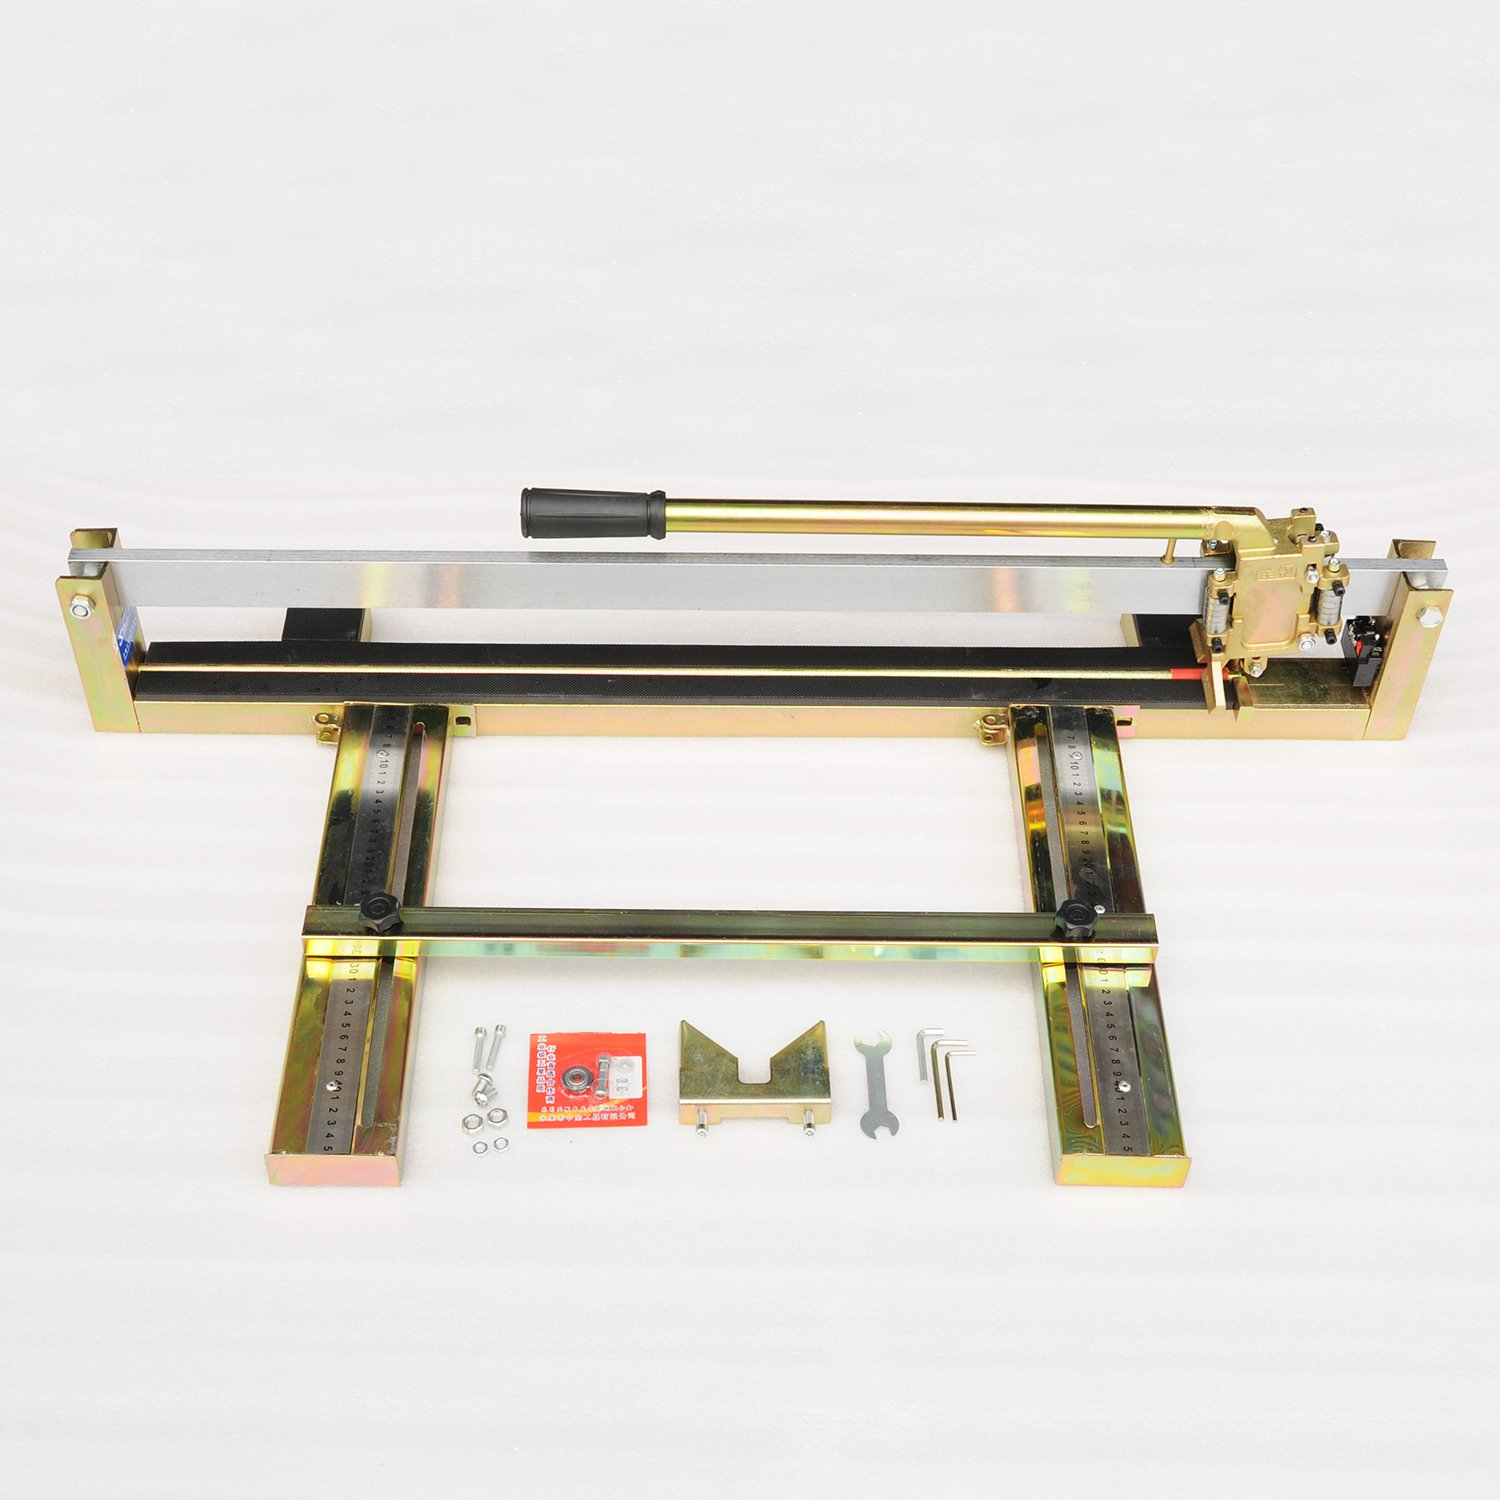 Wotefusi Manual Tile Cutter 31.5 inch Tile Saw Cutting Tool with Metal Rail for Tile Stone Material